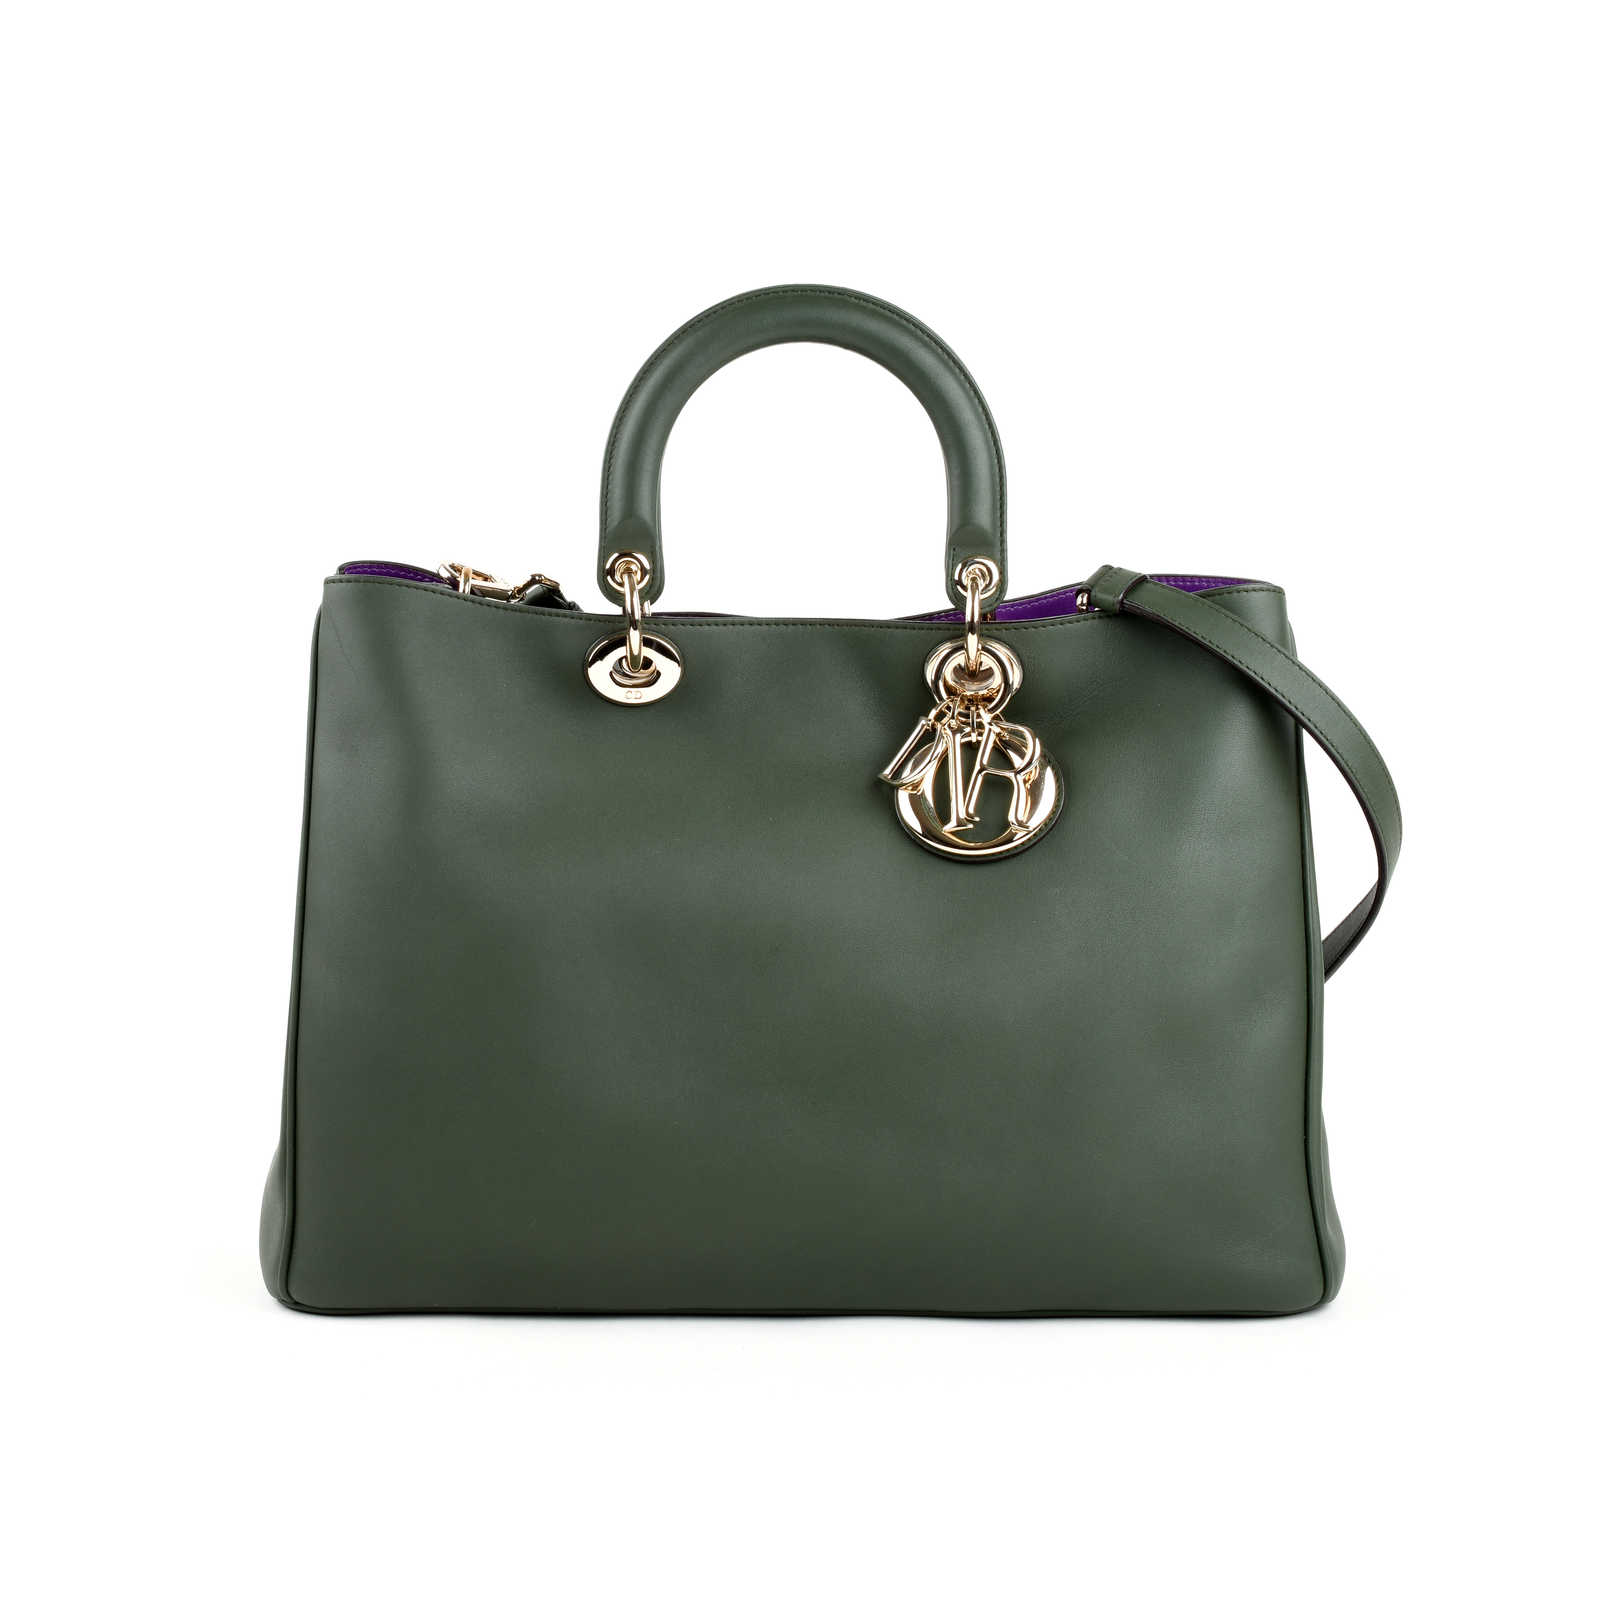 Authentic Pre Owned Dior Diorissimo Large Bag Pss 240 00219